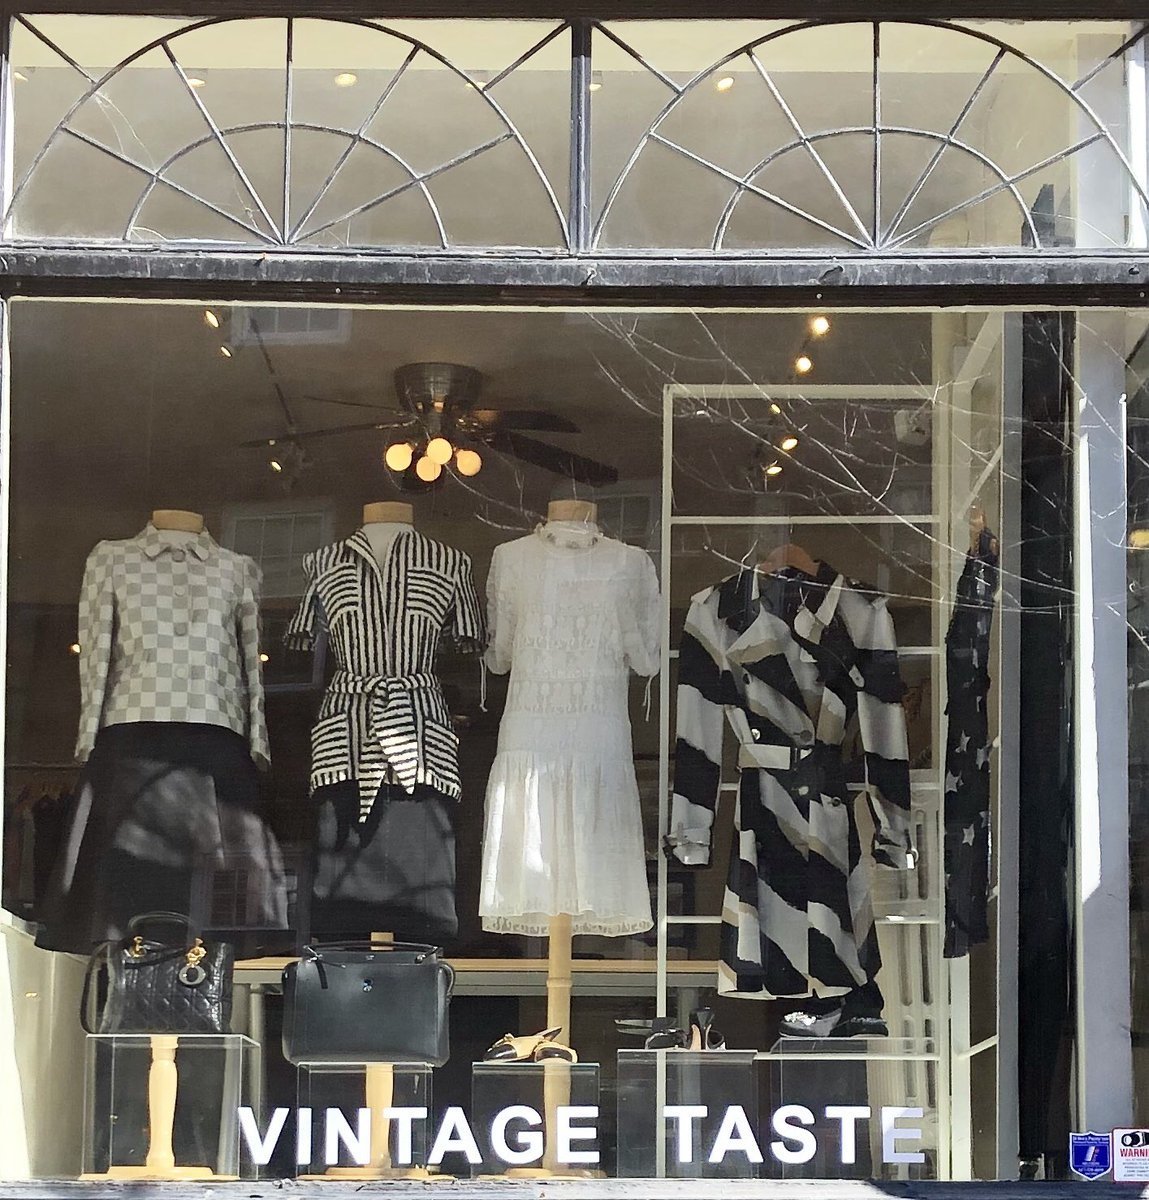 #beautifulday for our new #spring #window display #featuring #onlythebest including #Louis Vuitton #jacket with #maxmaraskirt #quinastoresus #belted #top #gucciskirt #isabelmarantdress #gucci #trenchcoat #miumiuheels #guccisandals #chanel #miniheels #fendidotcombag & #ladydiorbagpic.twitter.com/mKeSZ9s1QD – at Vintage Taste